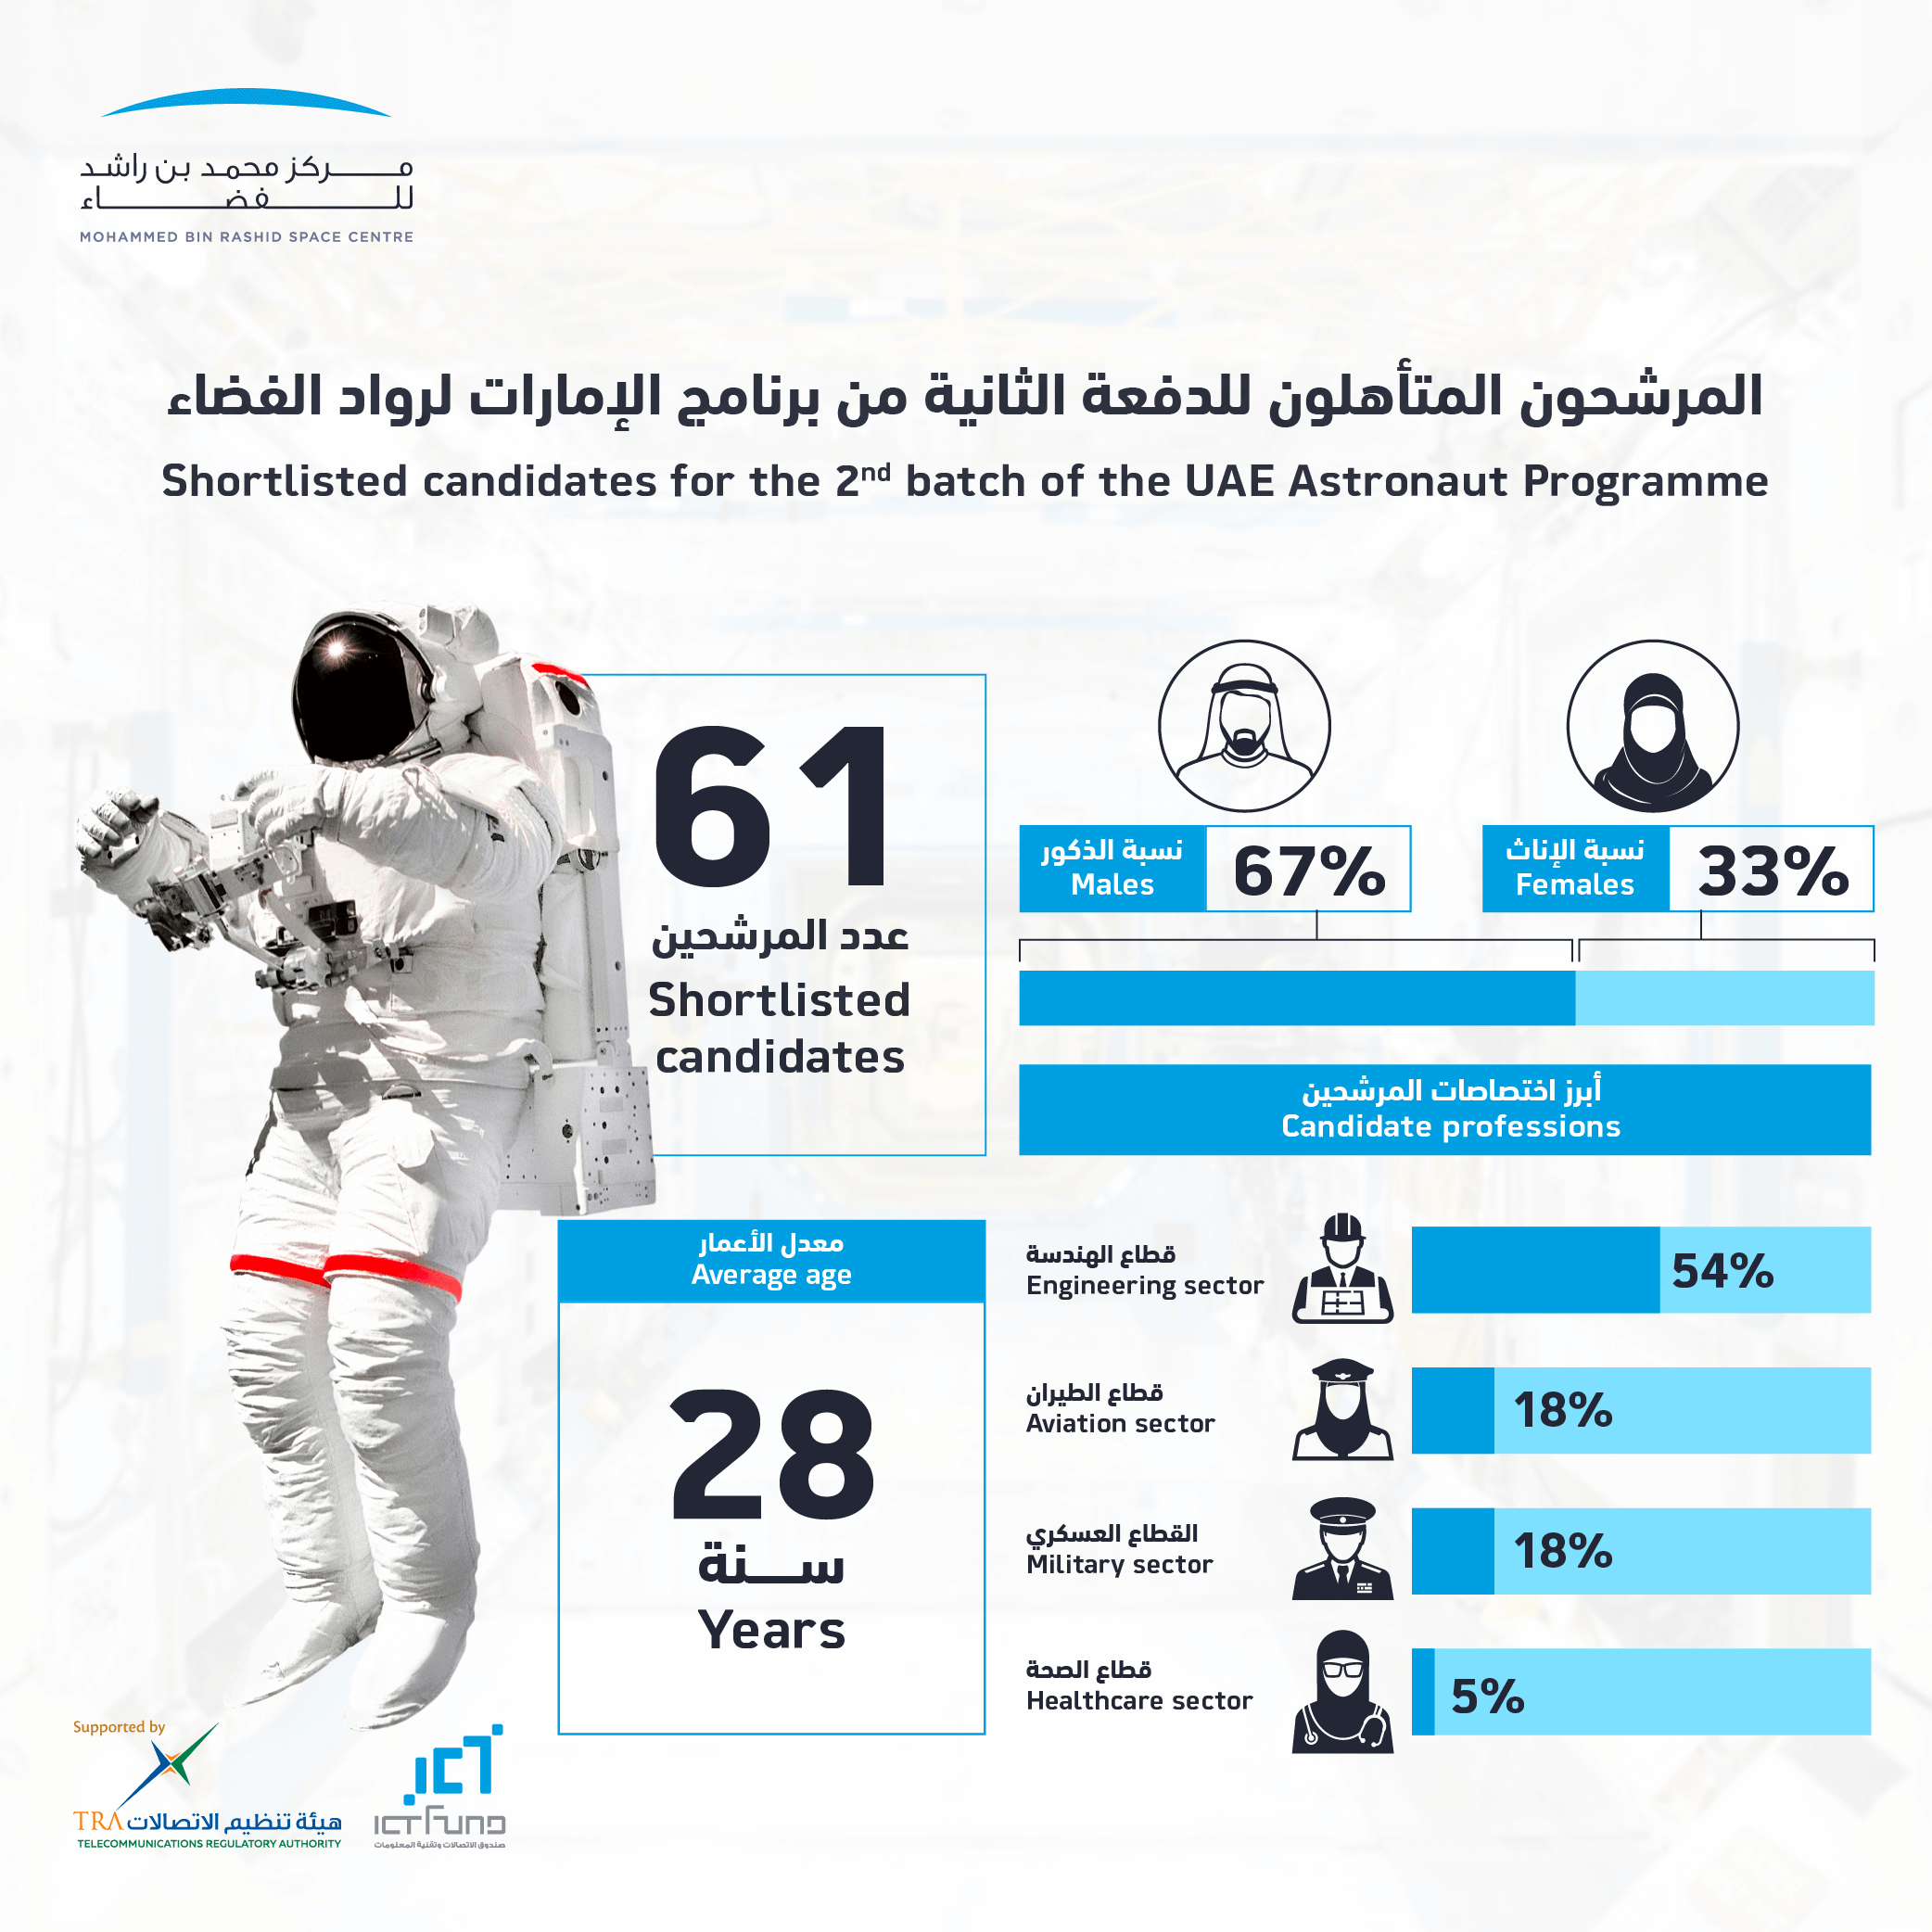 61 Candidates Shortlisted for the Second Batch of the UAE Astronaut Programme